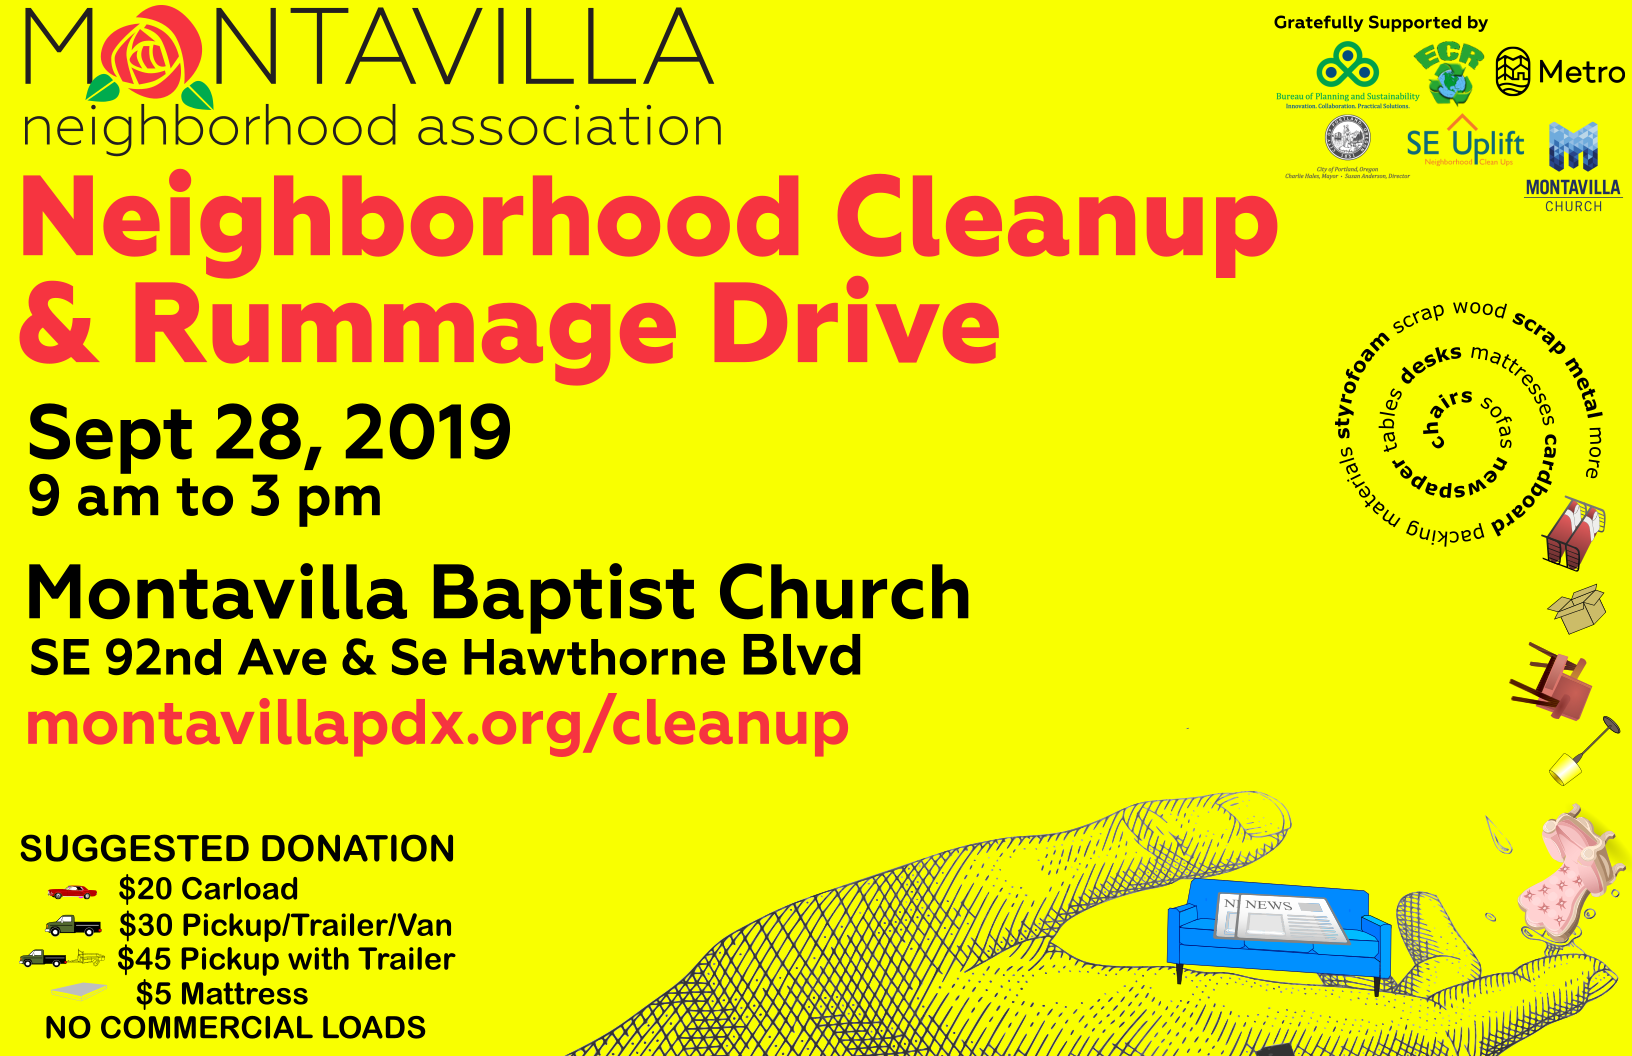 Montavilla Neighborhood Association Cleanup - Sept 28, 2019